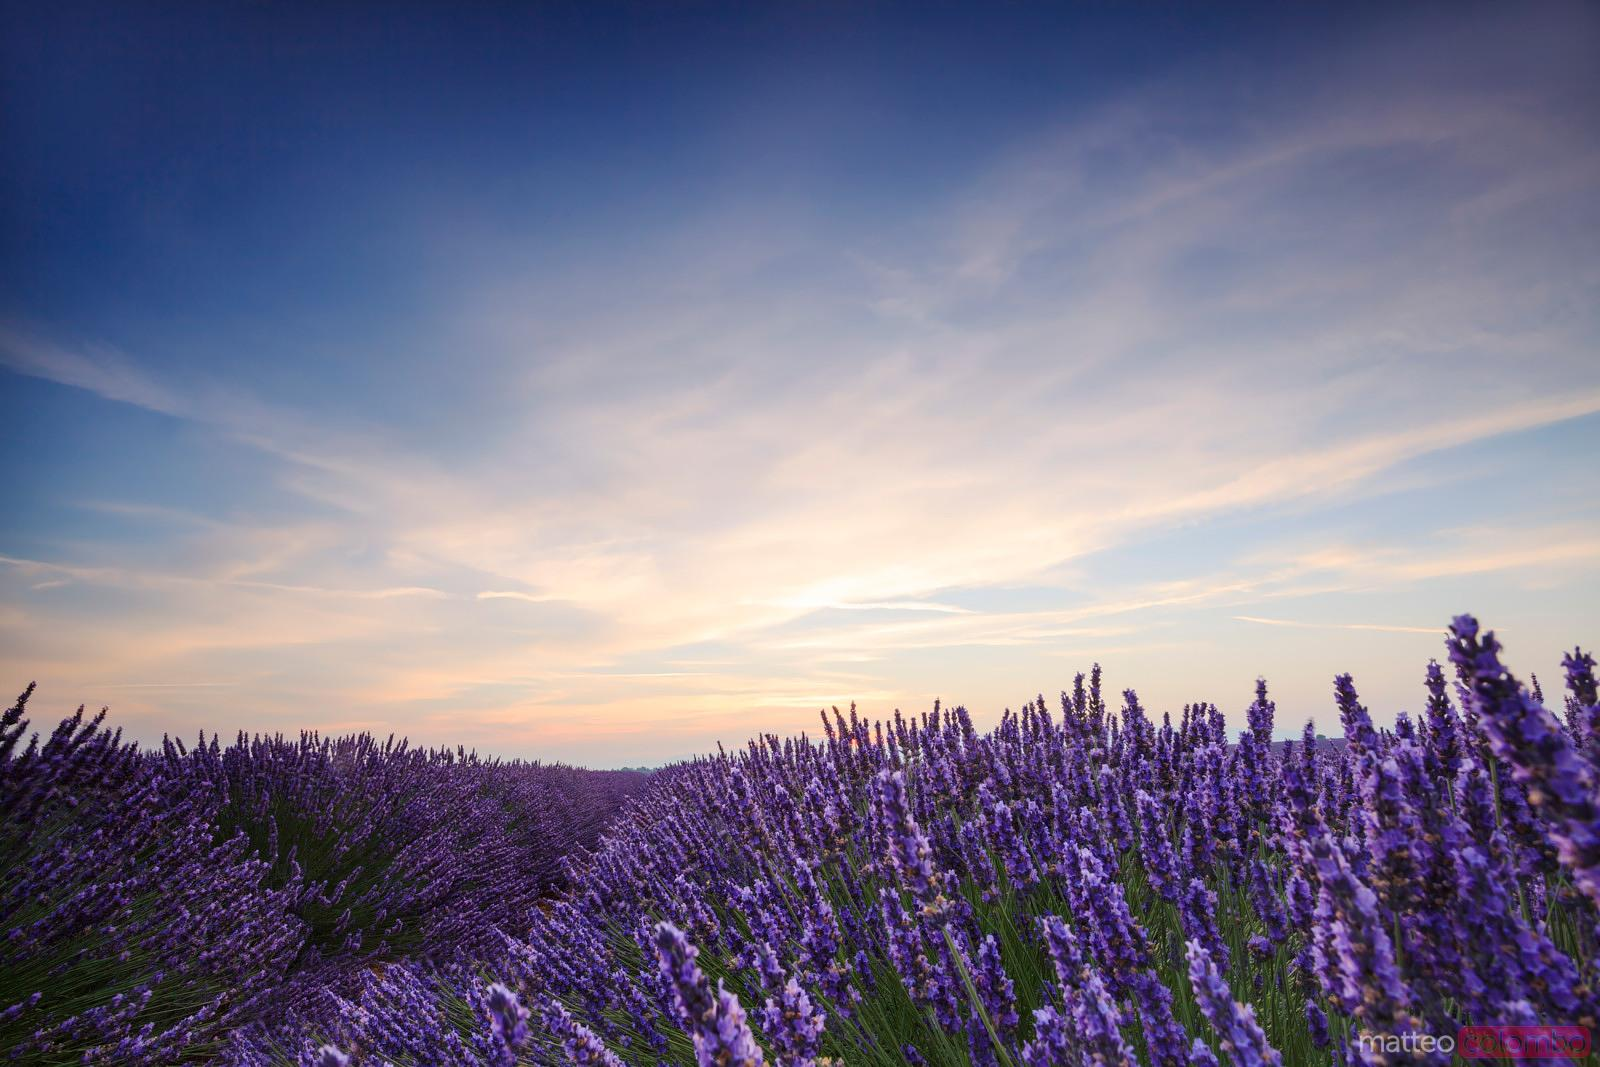 Lavender field at dawn, Provence, France